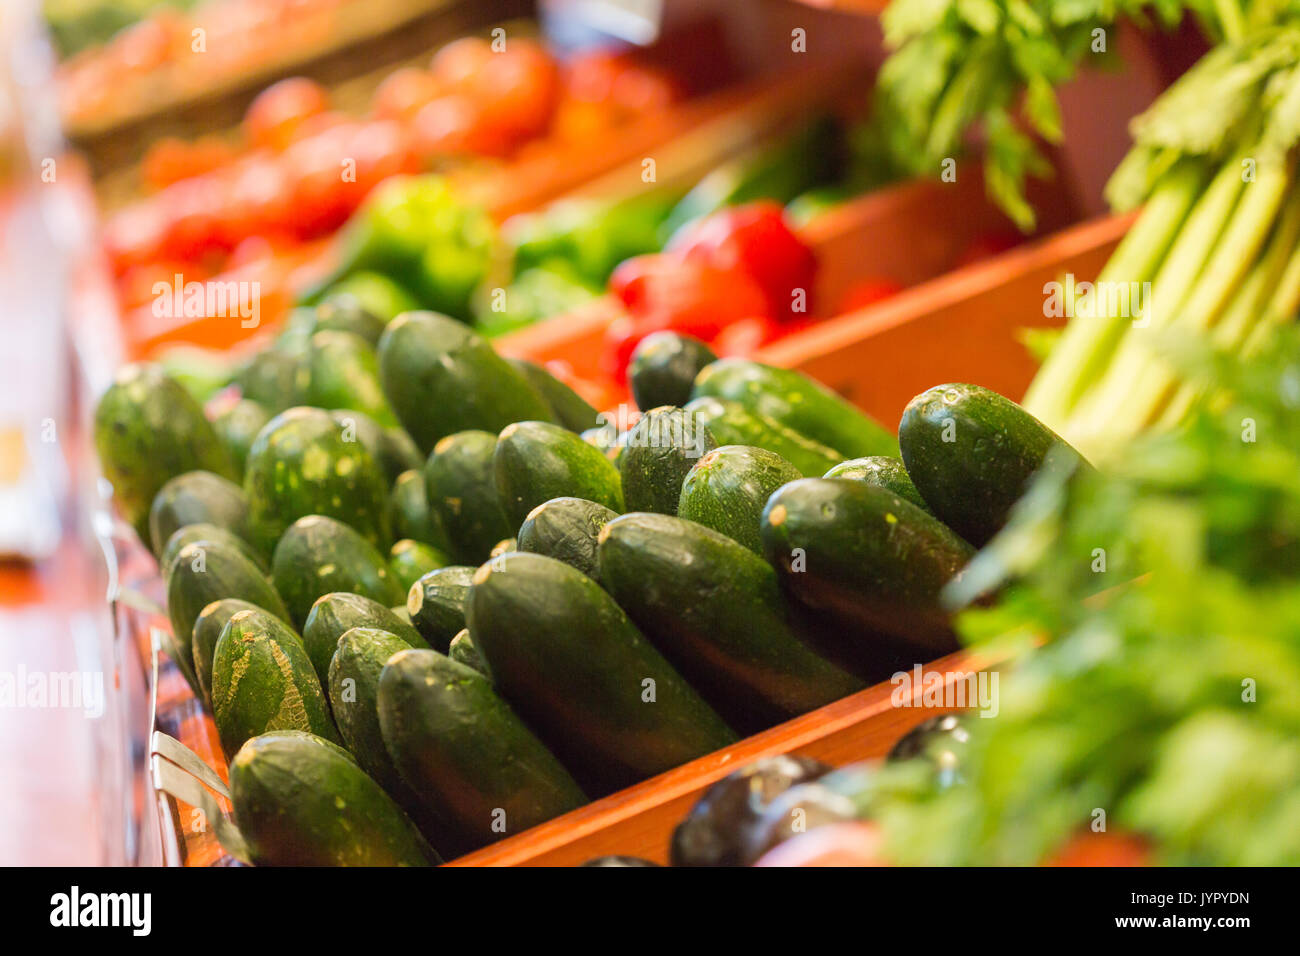 Lots of zucchini on a market stall. These are green vegetables and very good for health. - Stock Image